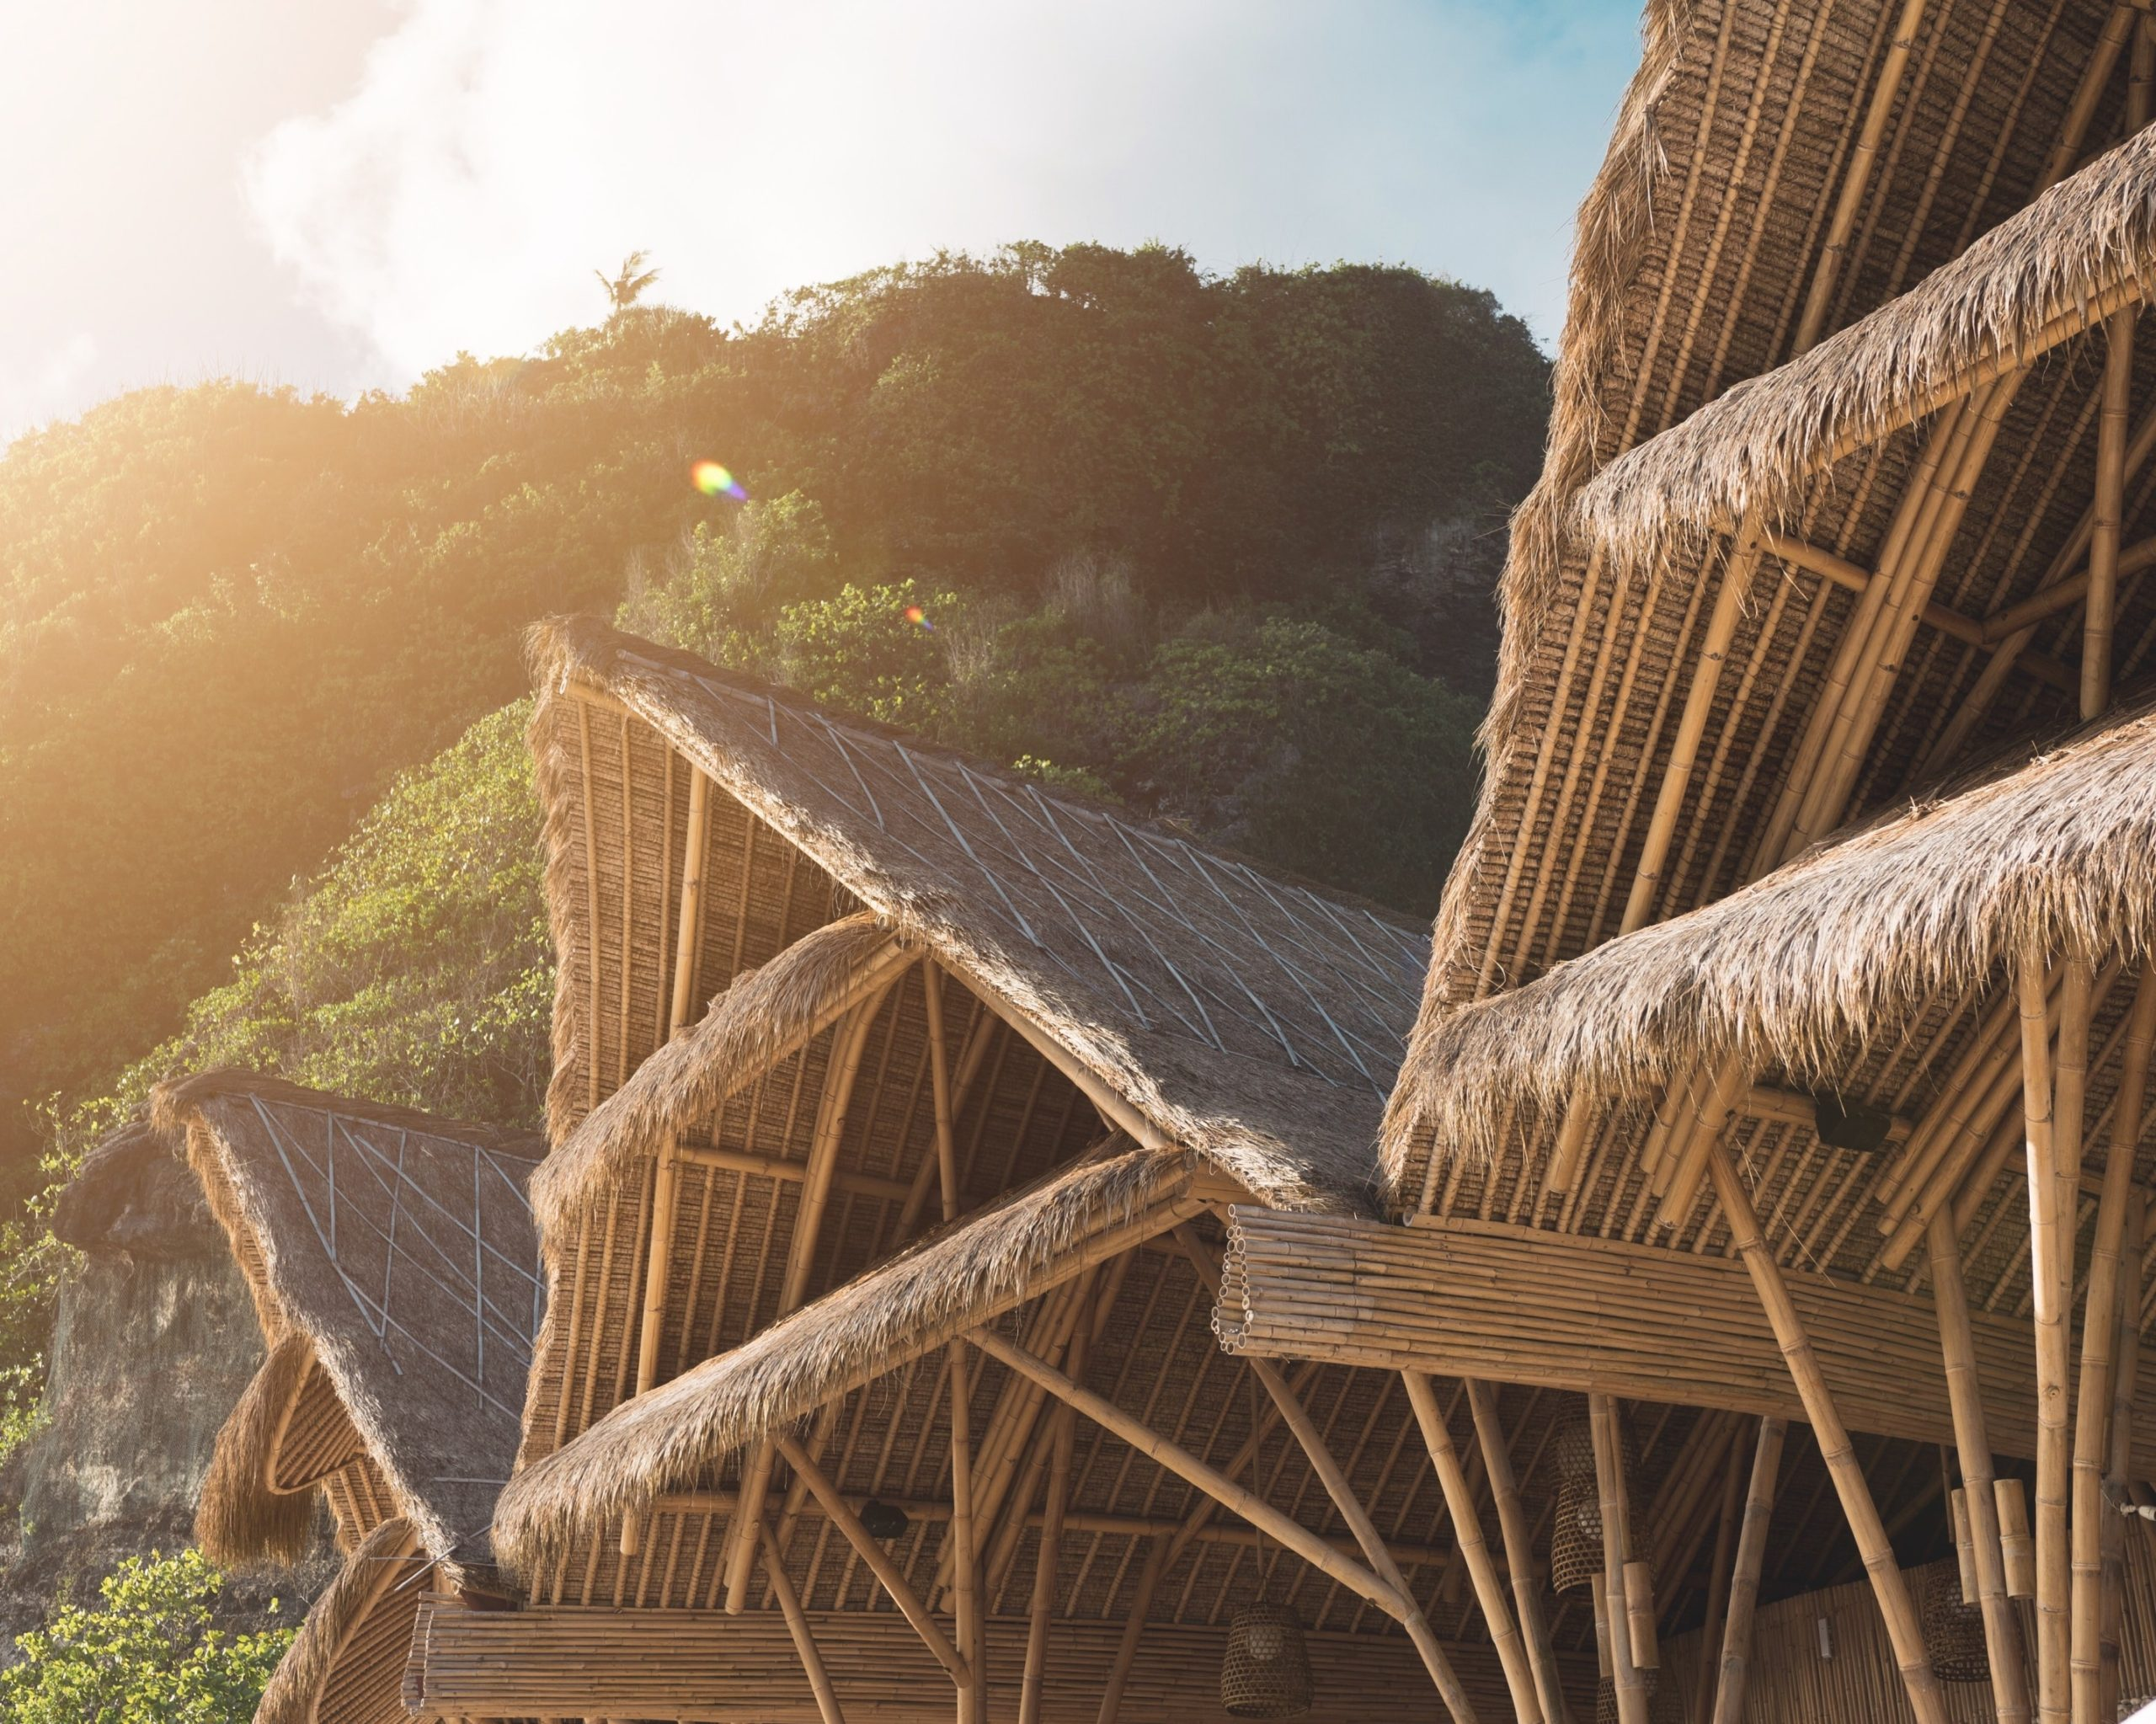 Eco-Friendly Construction: Bamboo as a Construction Material